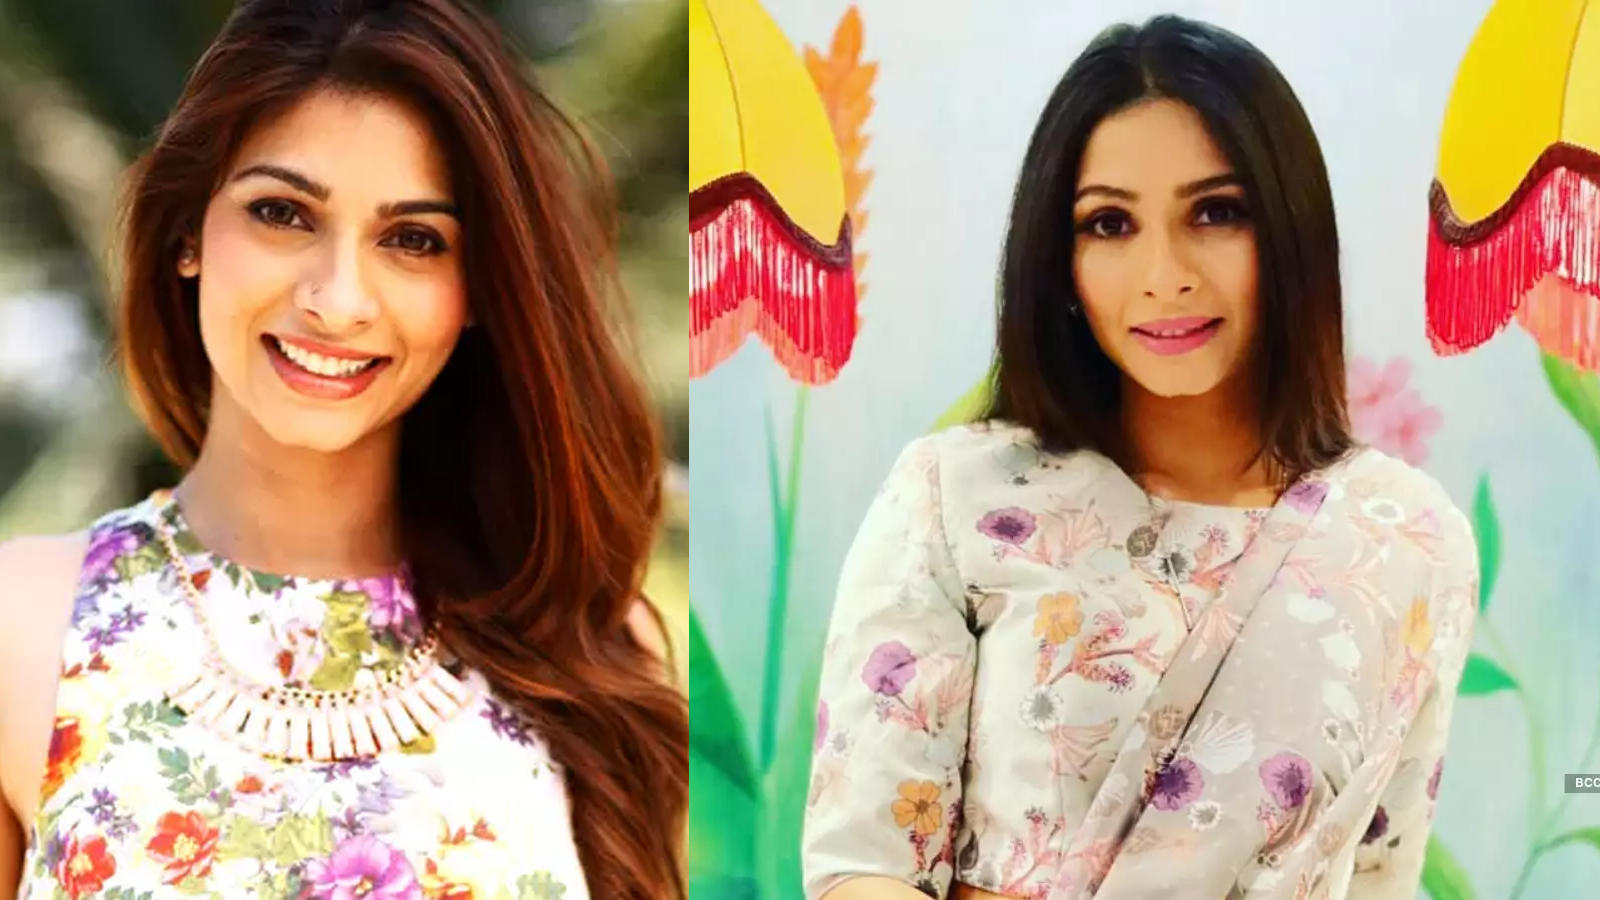 tanishaa-mukerji-would-like-to-have-a-child-when-she-finds-the-right-person-for-her-says-its-very-important-for-a-child-to-have-a-father